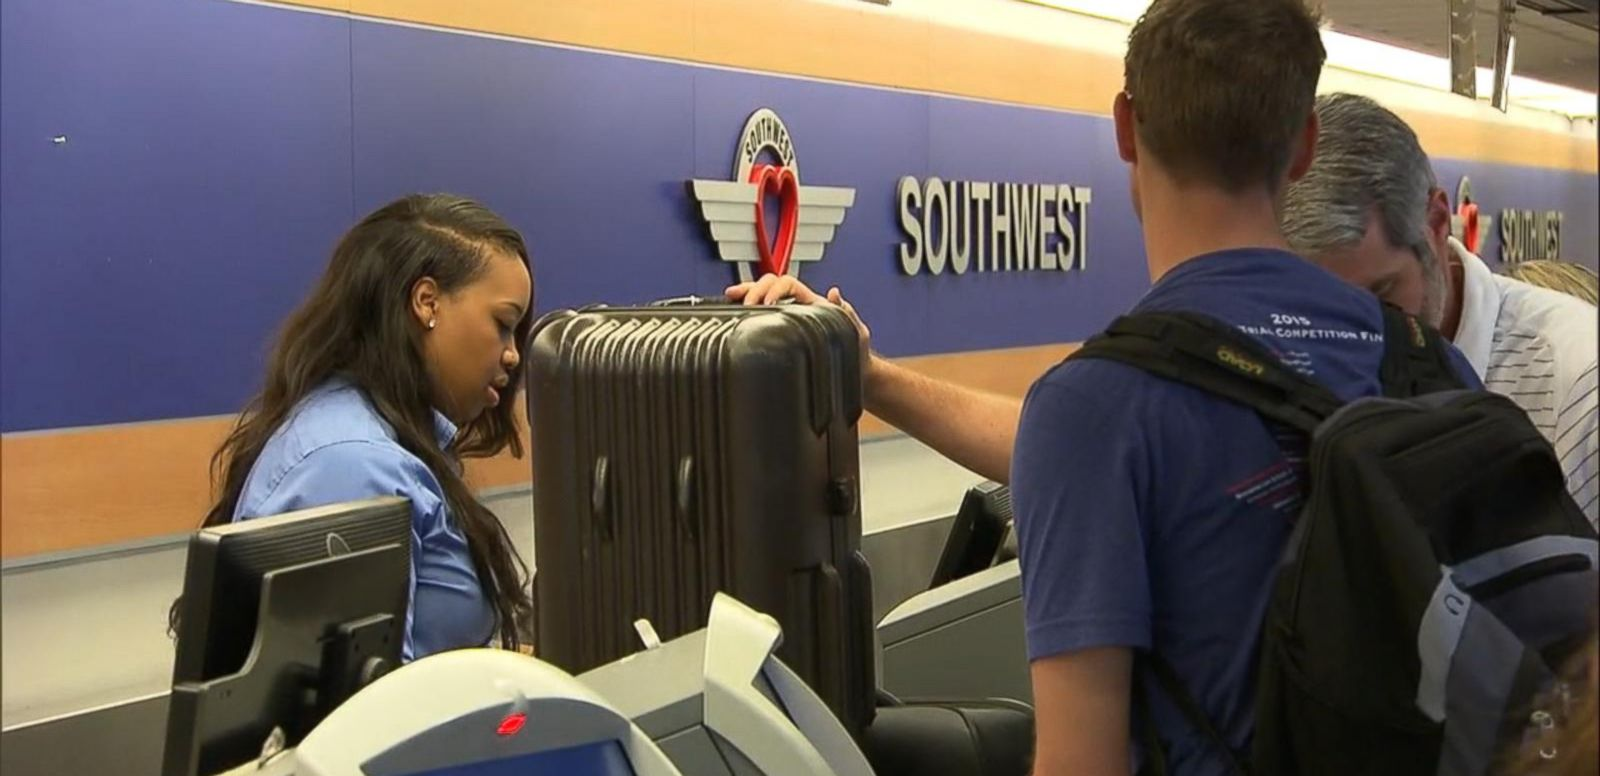 VIDEO: Computer Glitch Causes Travel Chaos on Southwest Airlines